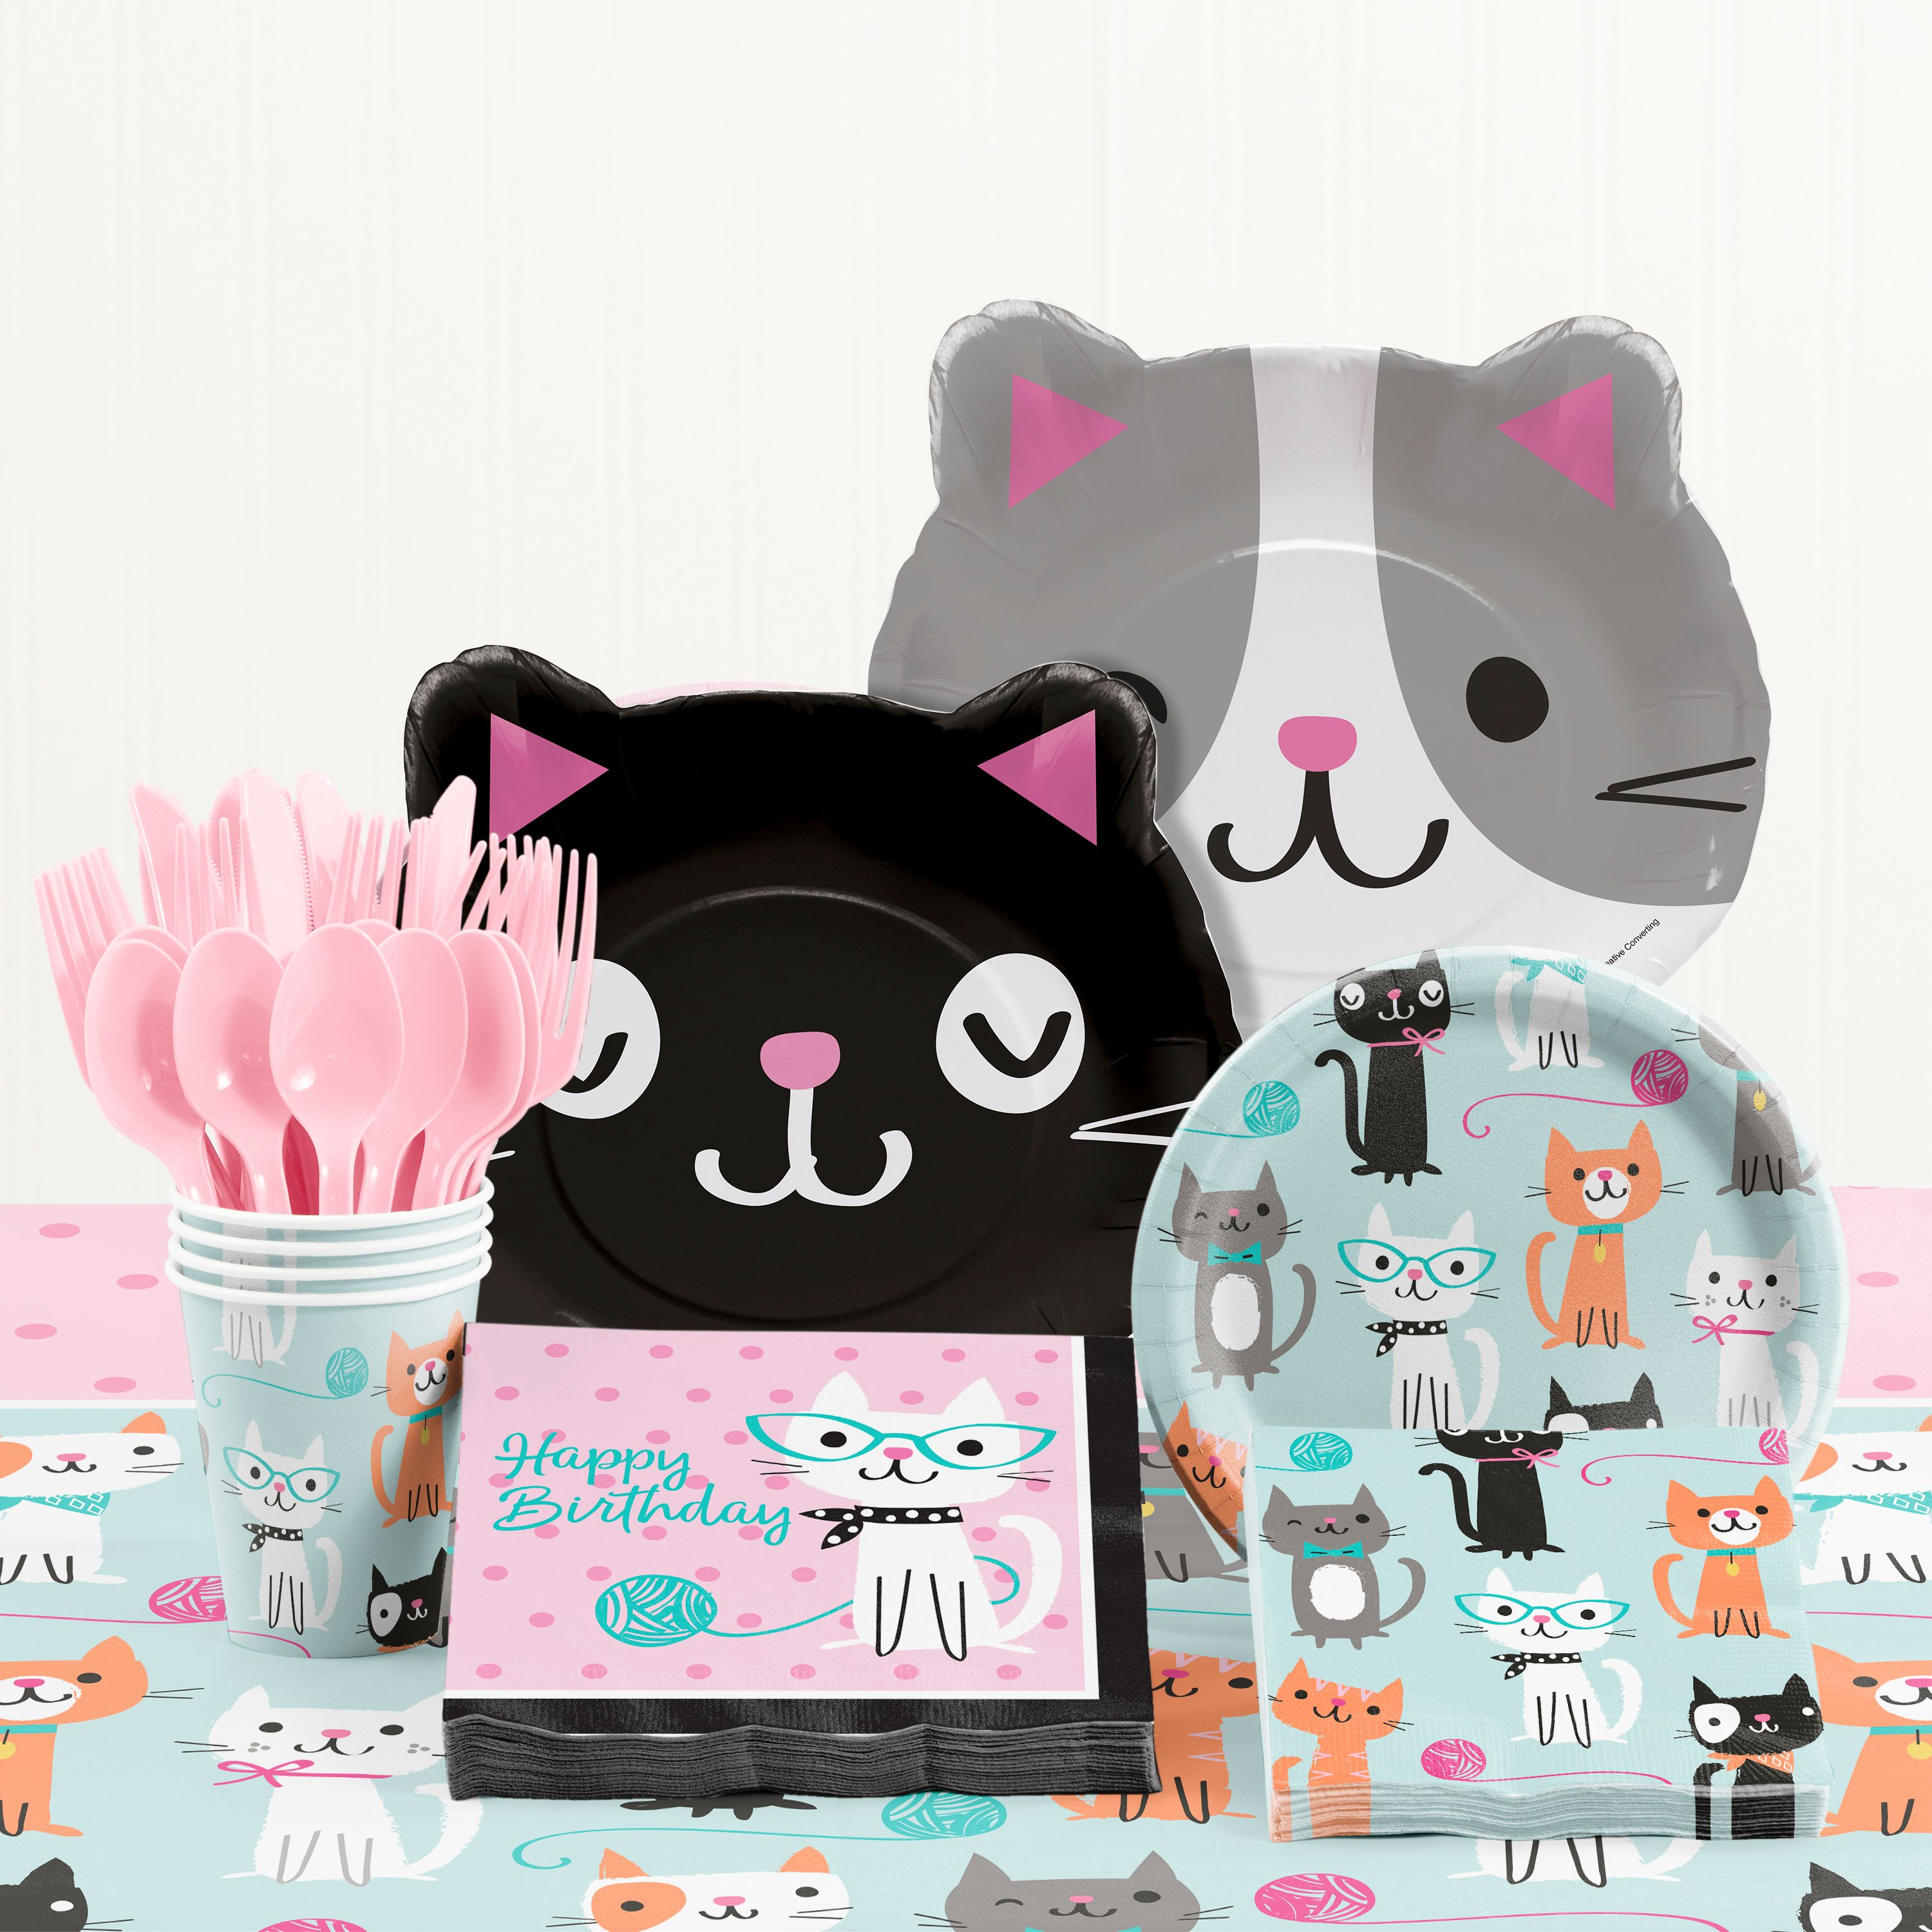 Purr-fect Cat Birthday Party Supplies Kit